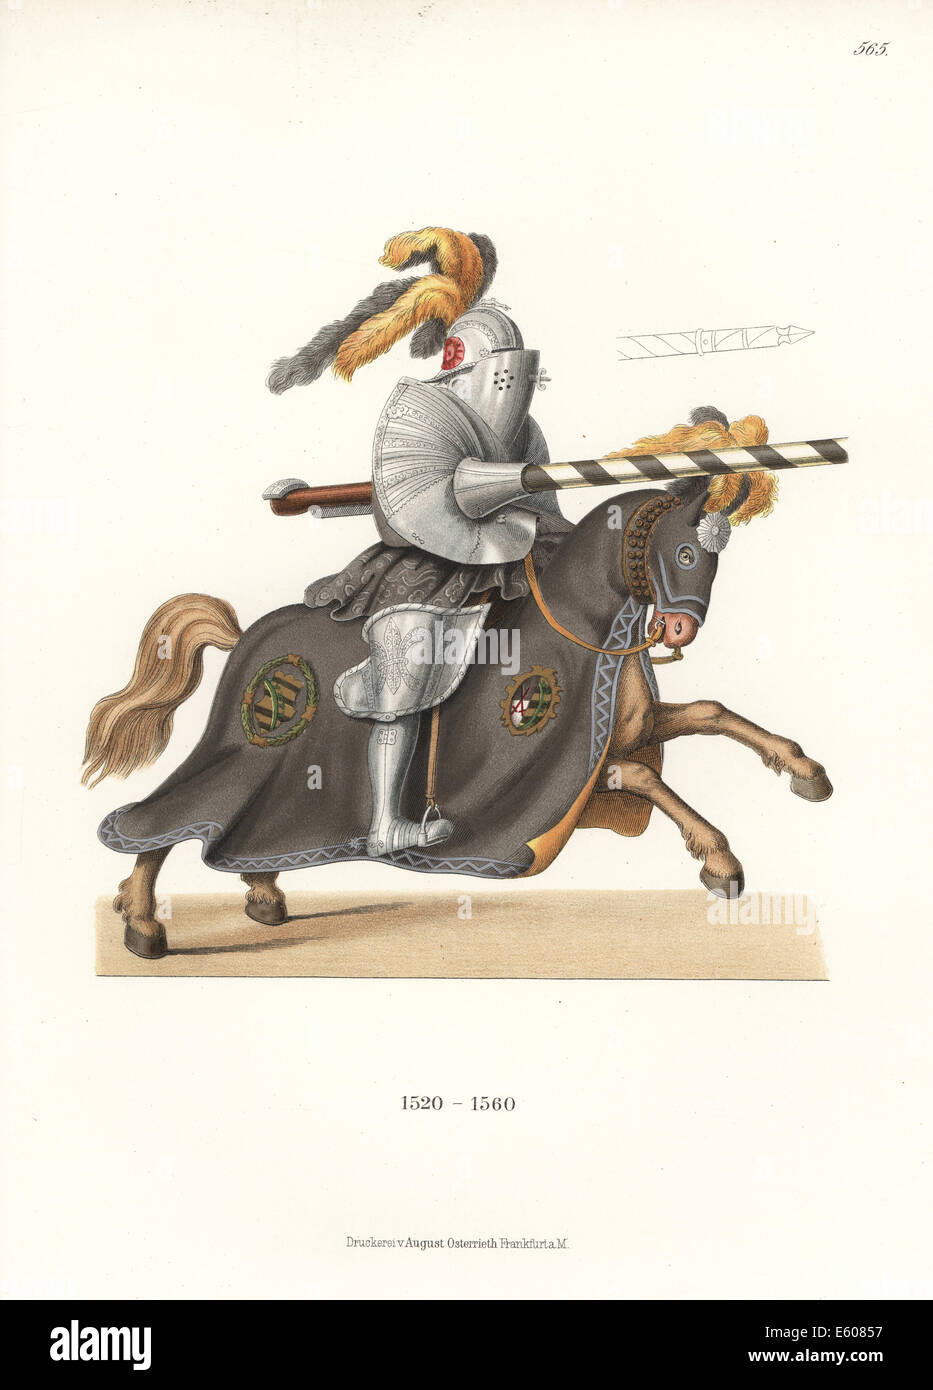 German knight in jousting armour, 16th century. - Stock Image